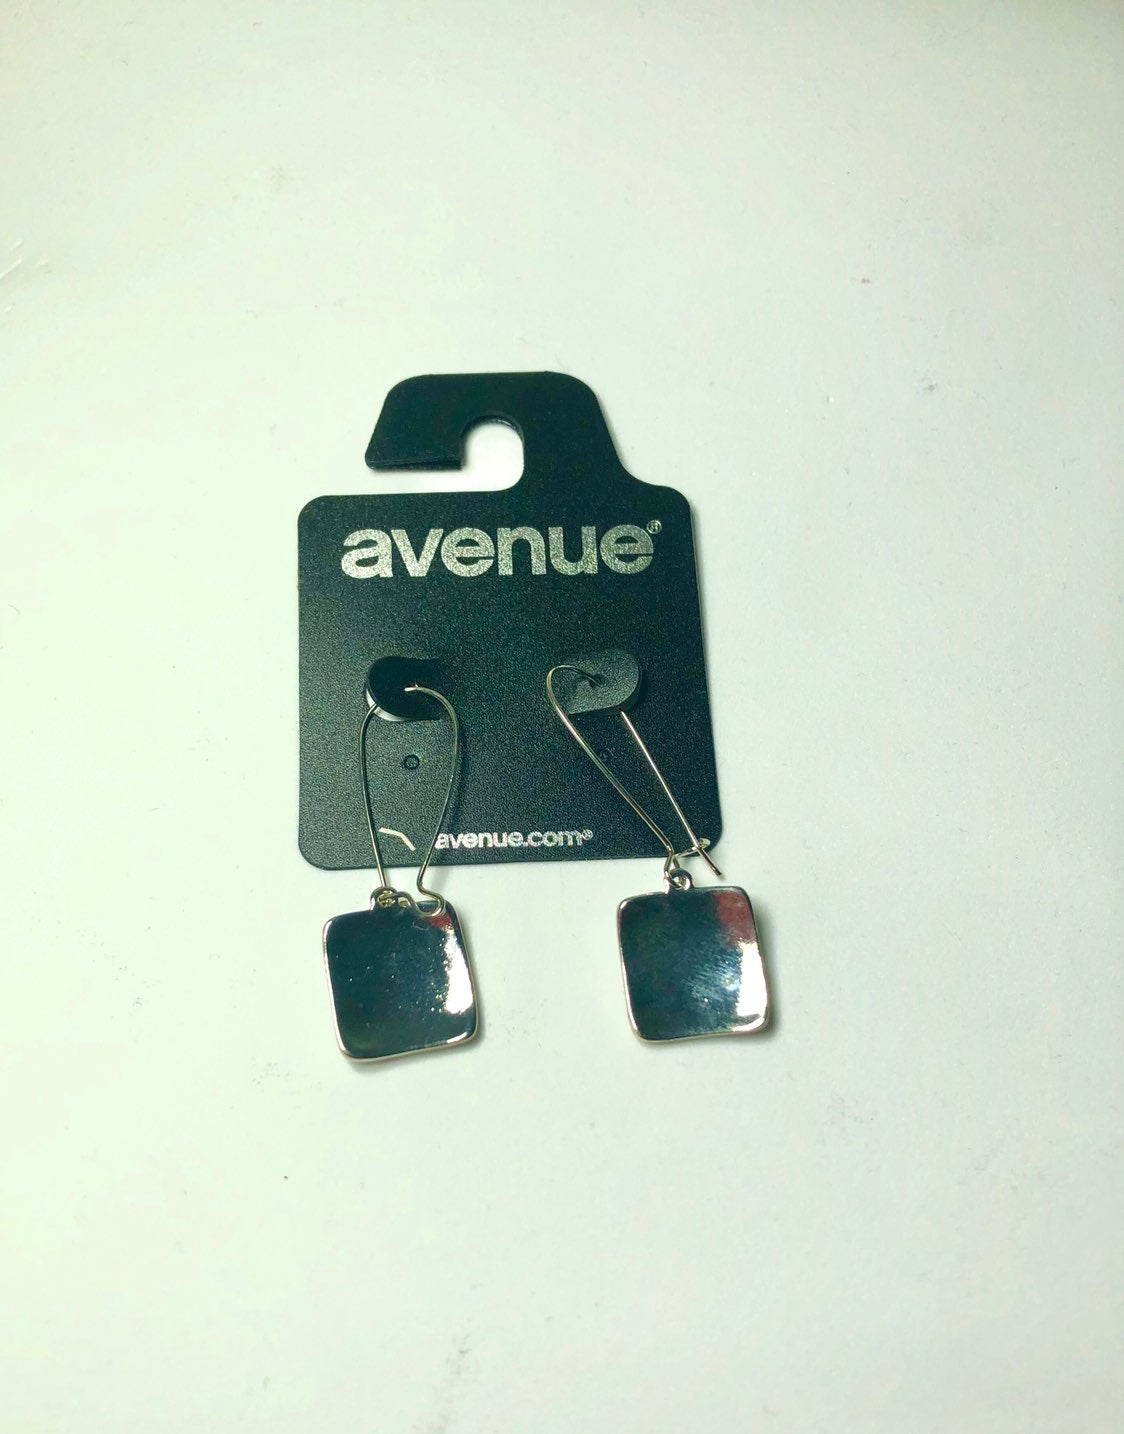 Silver-colored fashion earrings from Ave